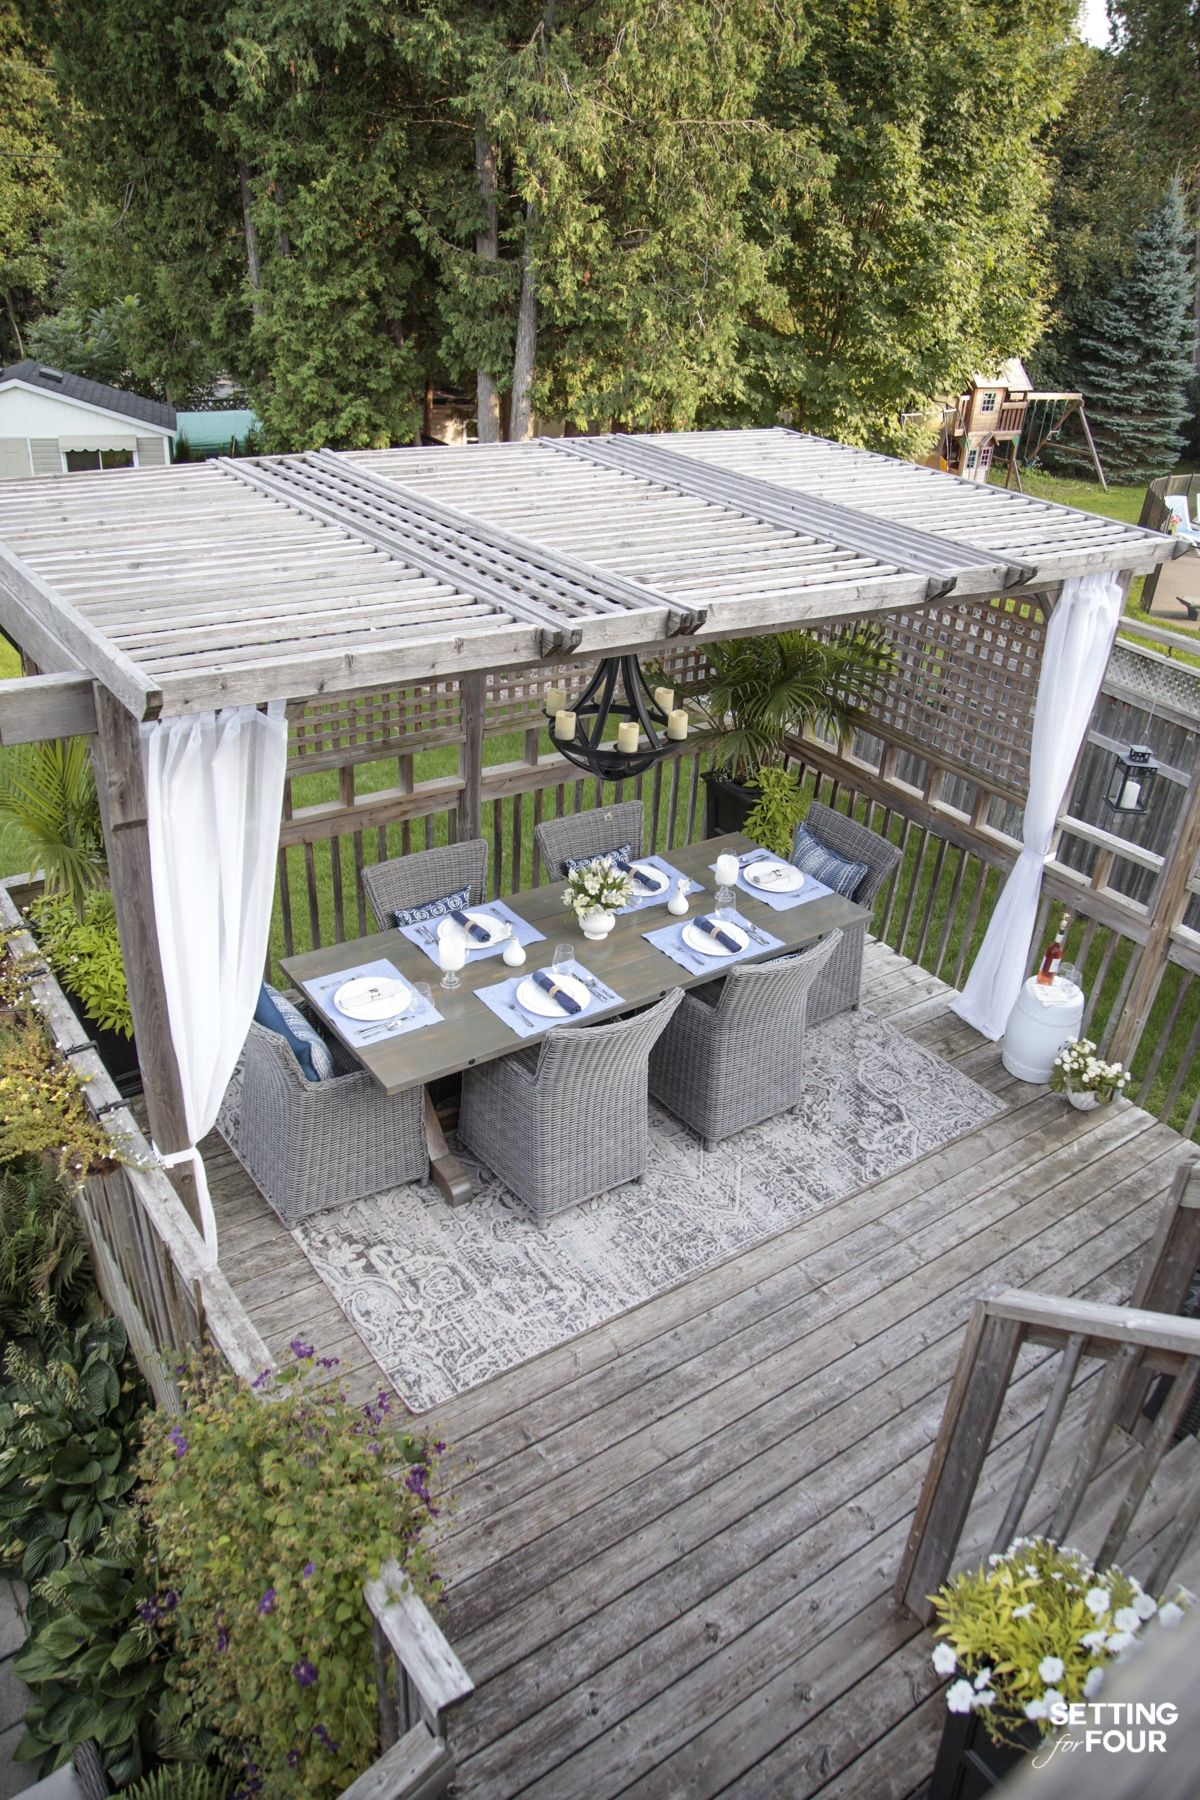 How to Create A Beautiful Pergola Dining Area - Furniture, Rug, Lighting, Table Setting & Decorating Ideas #pergola #outdoor #decor #design #diningroom #arearug #placesetting #landscaping